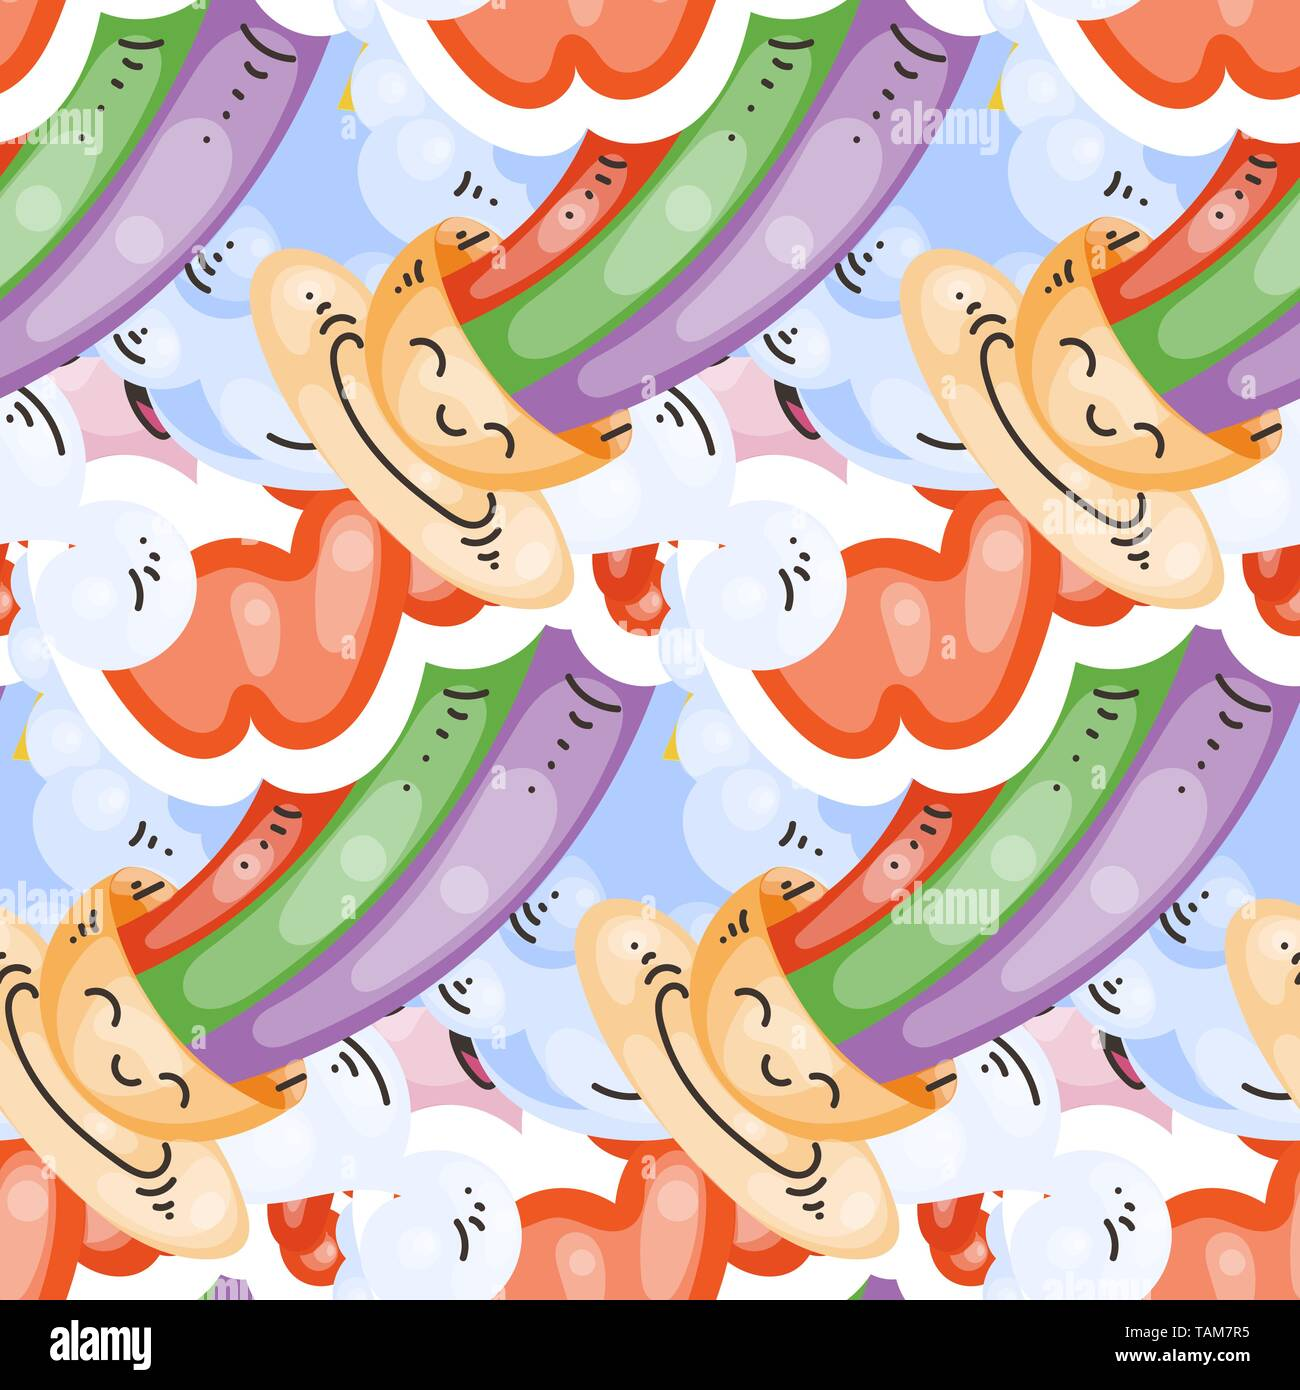 Seamless vector pattern with cute cartoon monsters and beasts. Nice for packaging, wrapping paper, coloring pages, wallpaper, fabric, fashion, home de - Stock Image